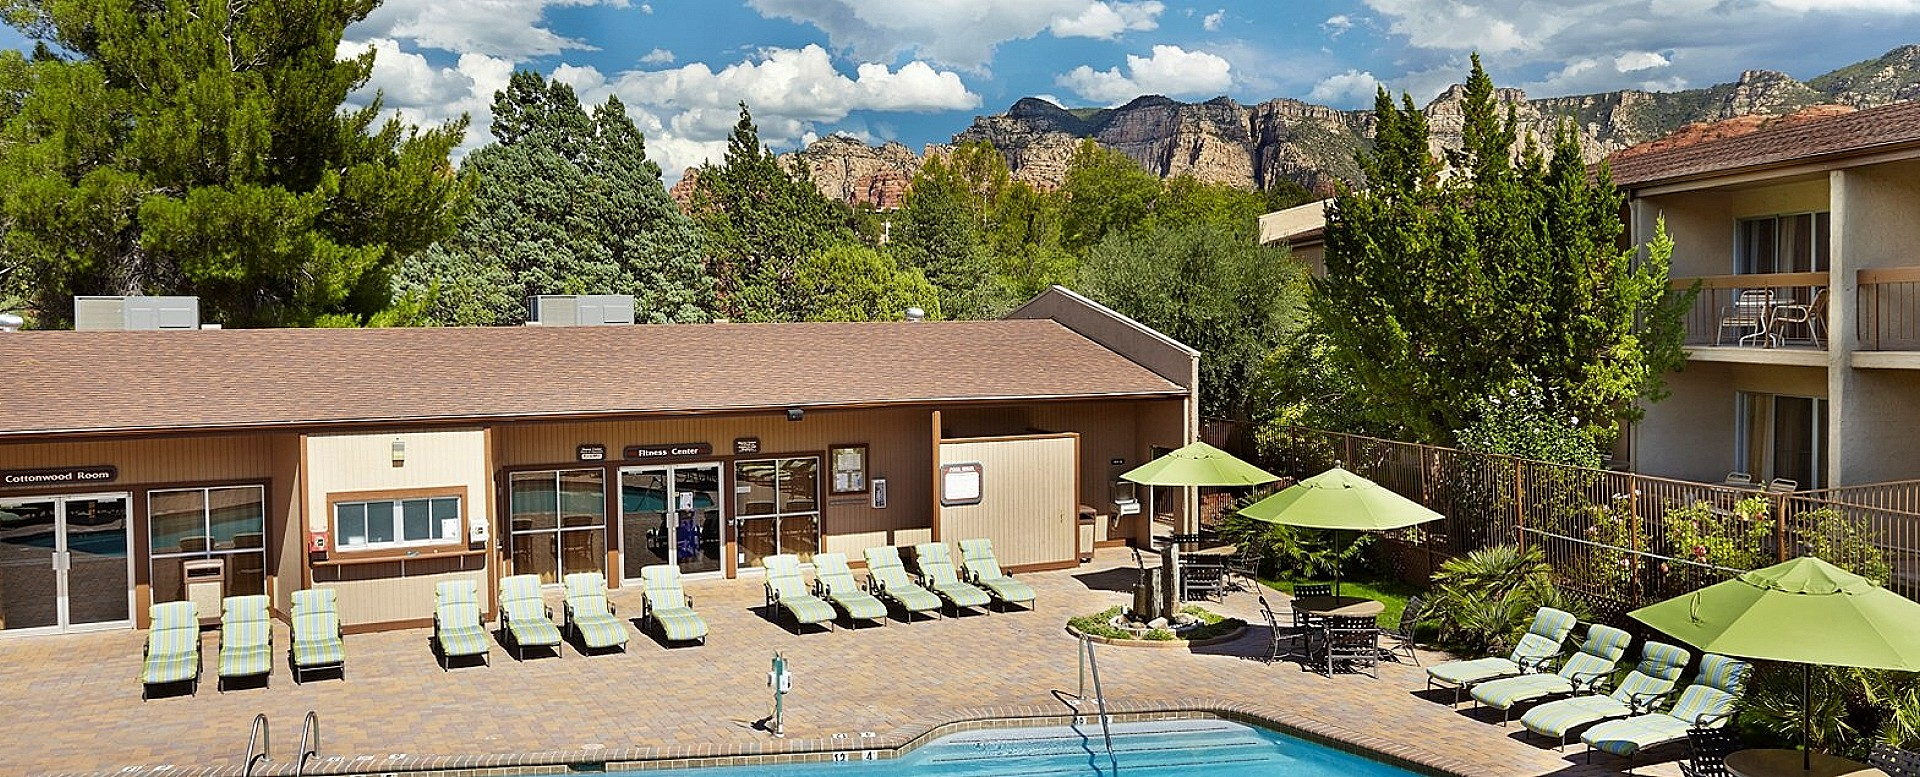 Poco Diablo Resort Sedona pool area